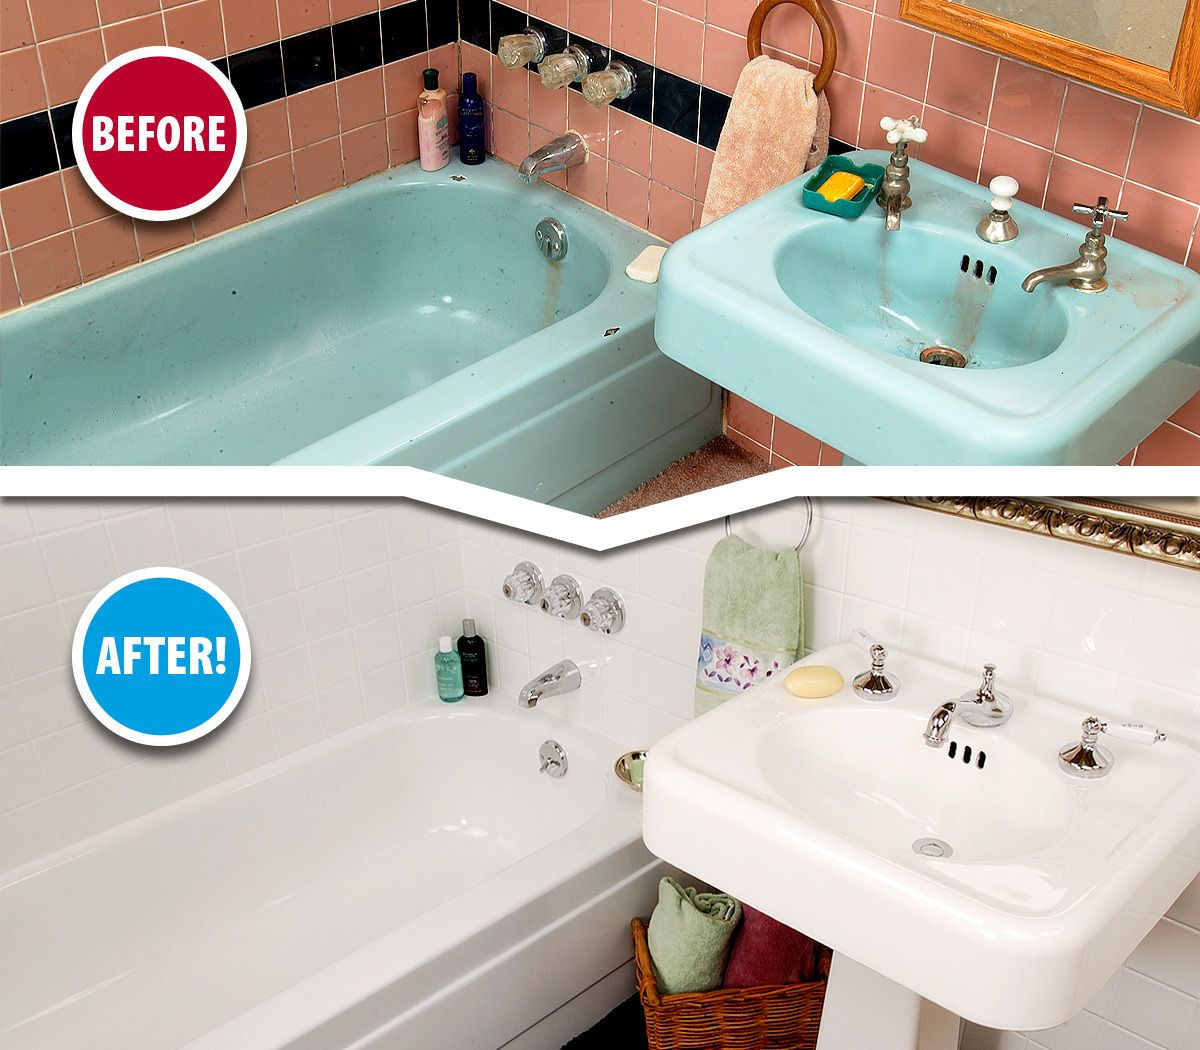 Selling Your Home Buyers Want Beautiful Updated Bathrooms Let